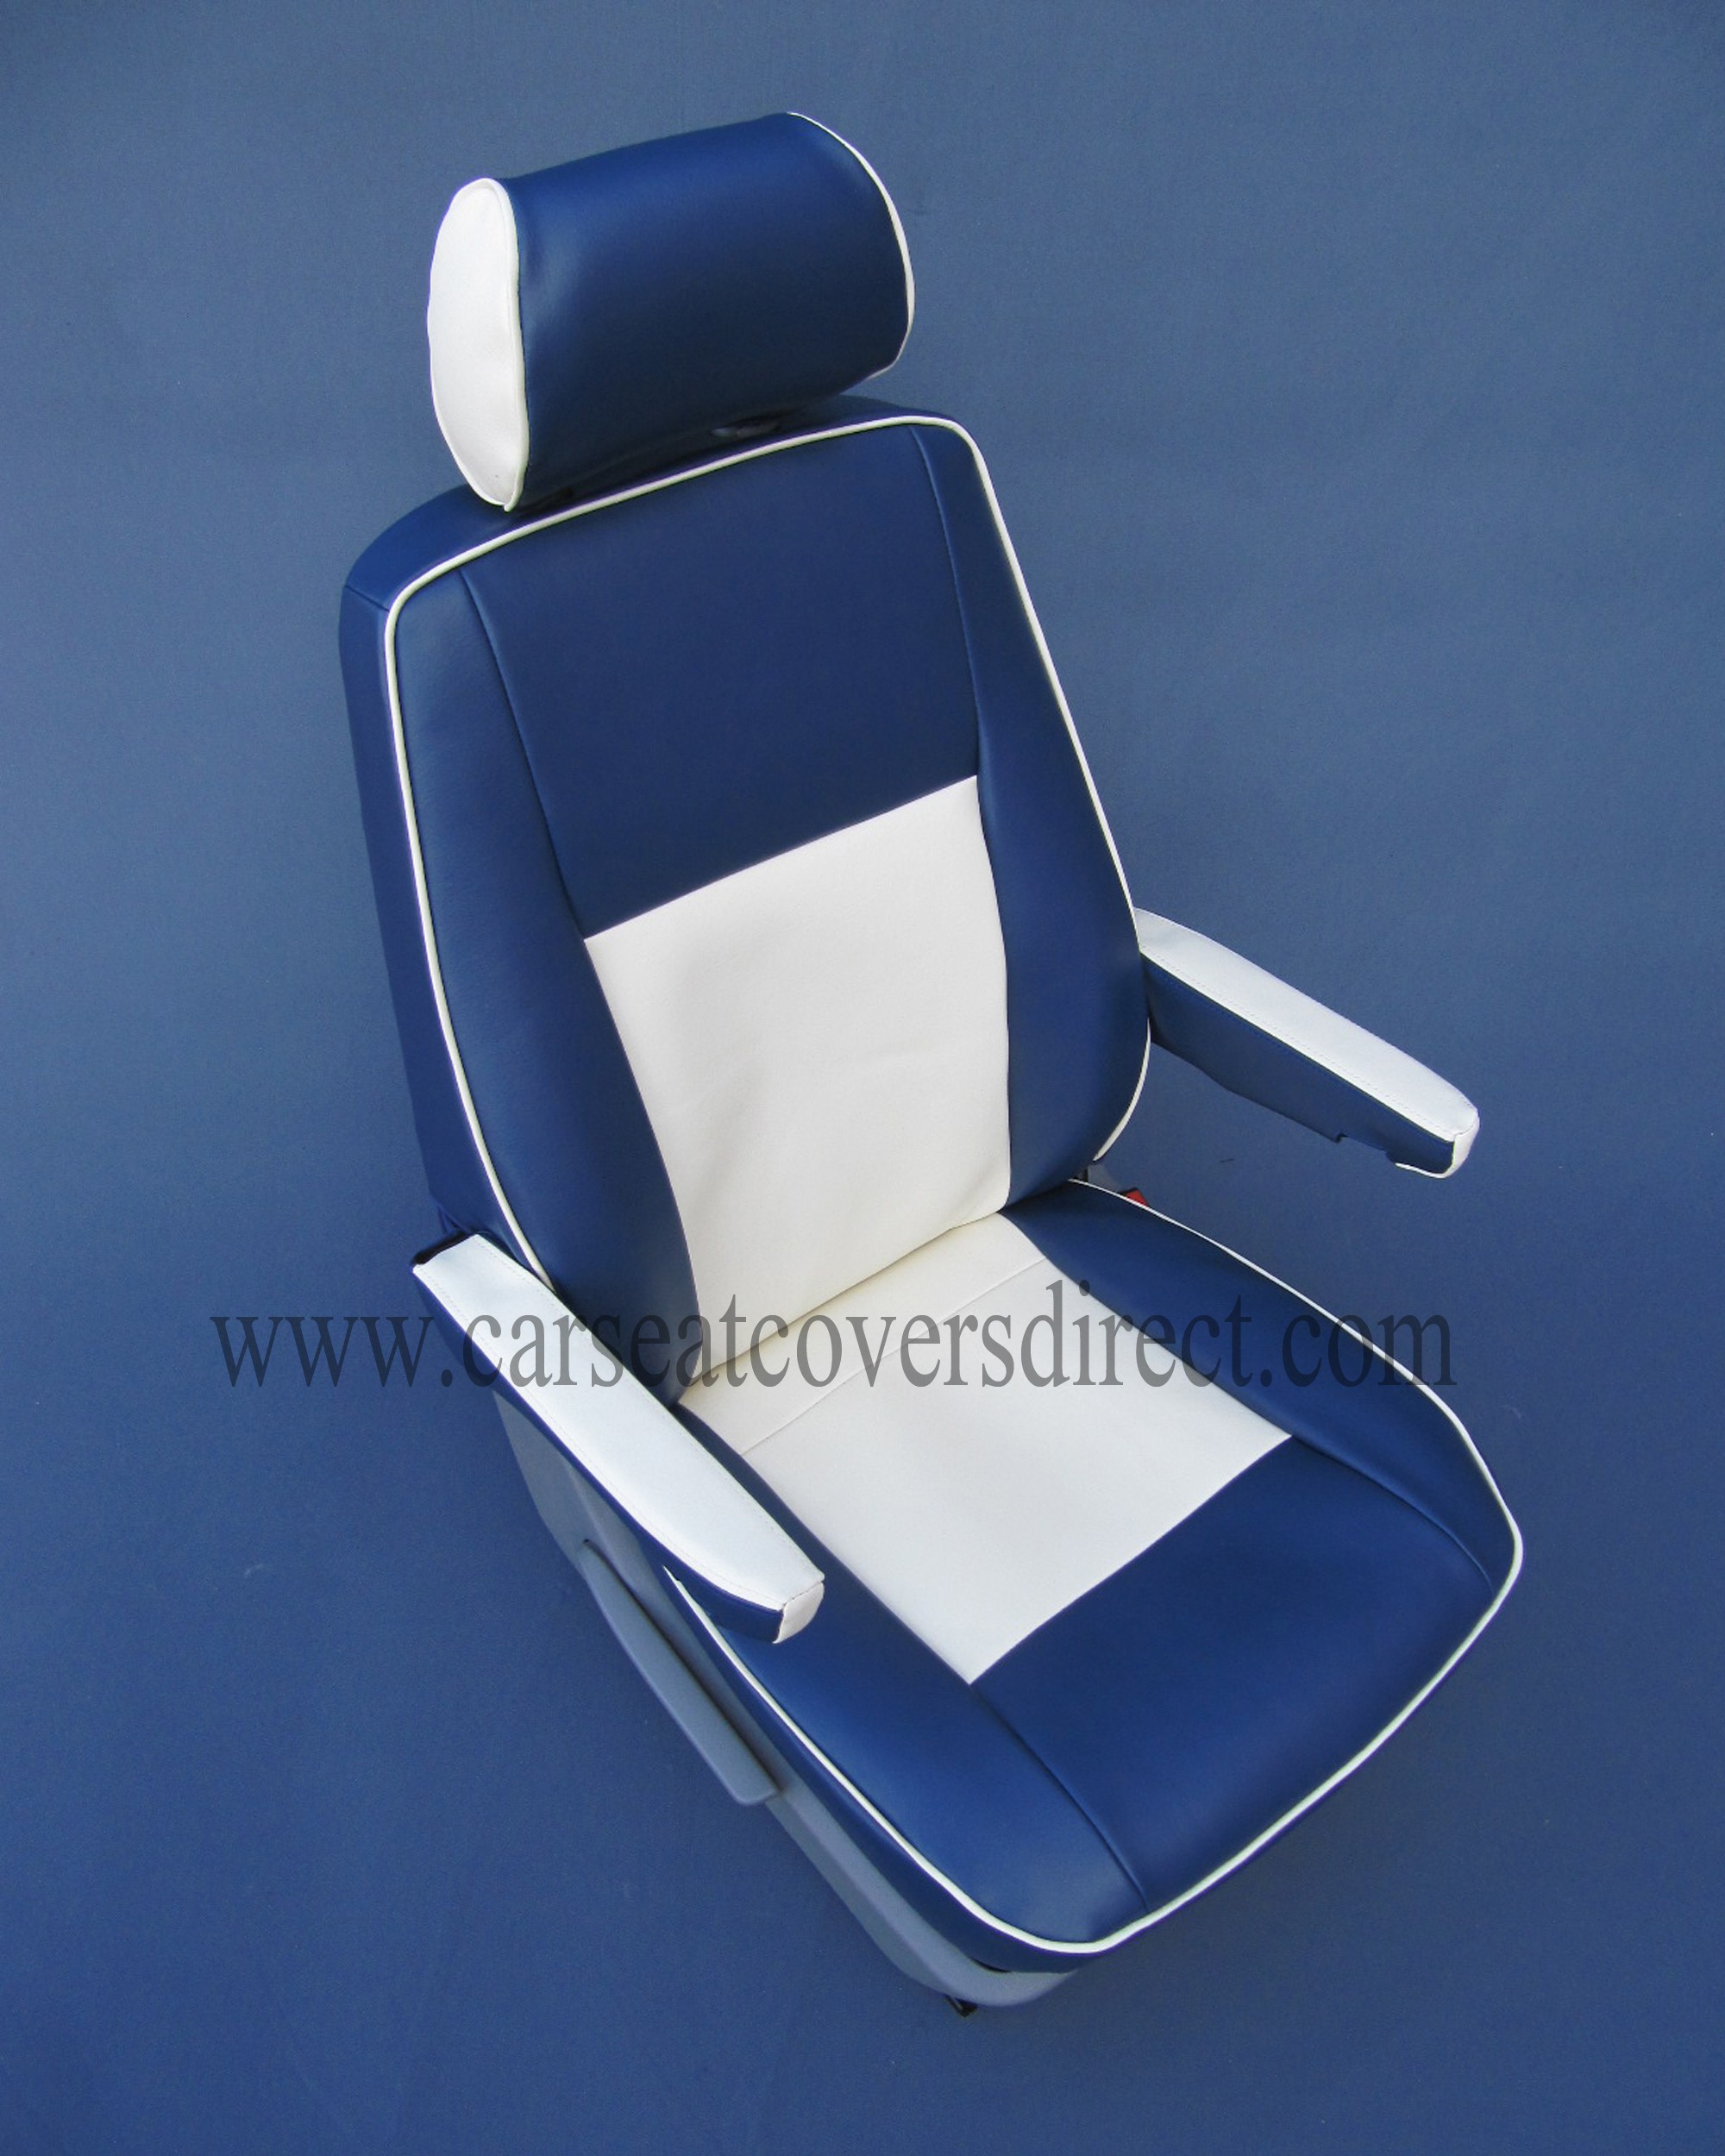 Volkswagen VW Transporter T6 Seat Covers - Blue & White